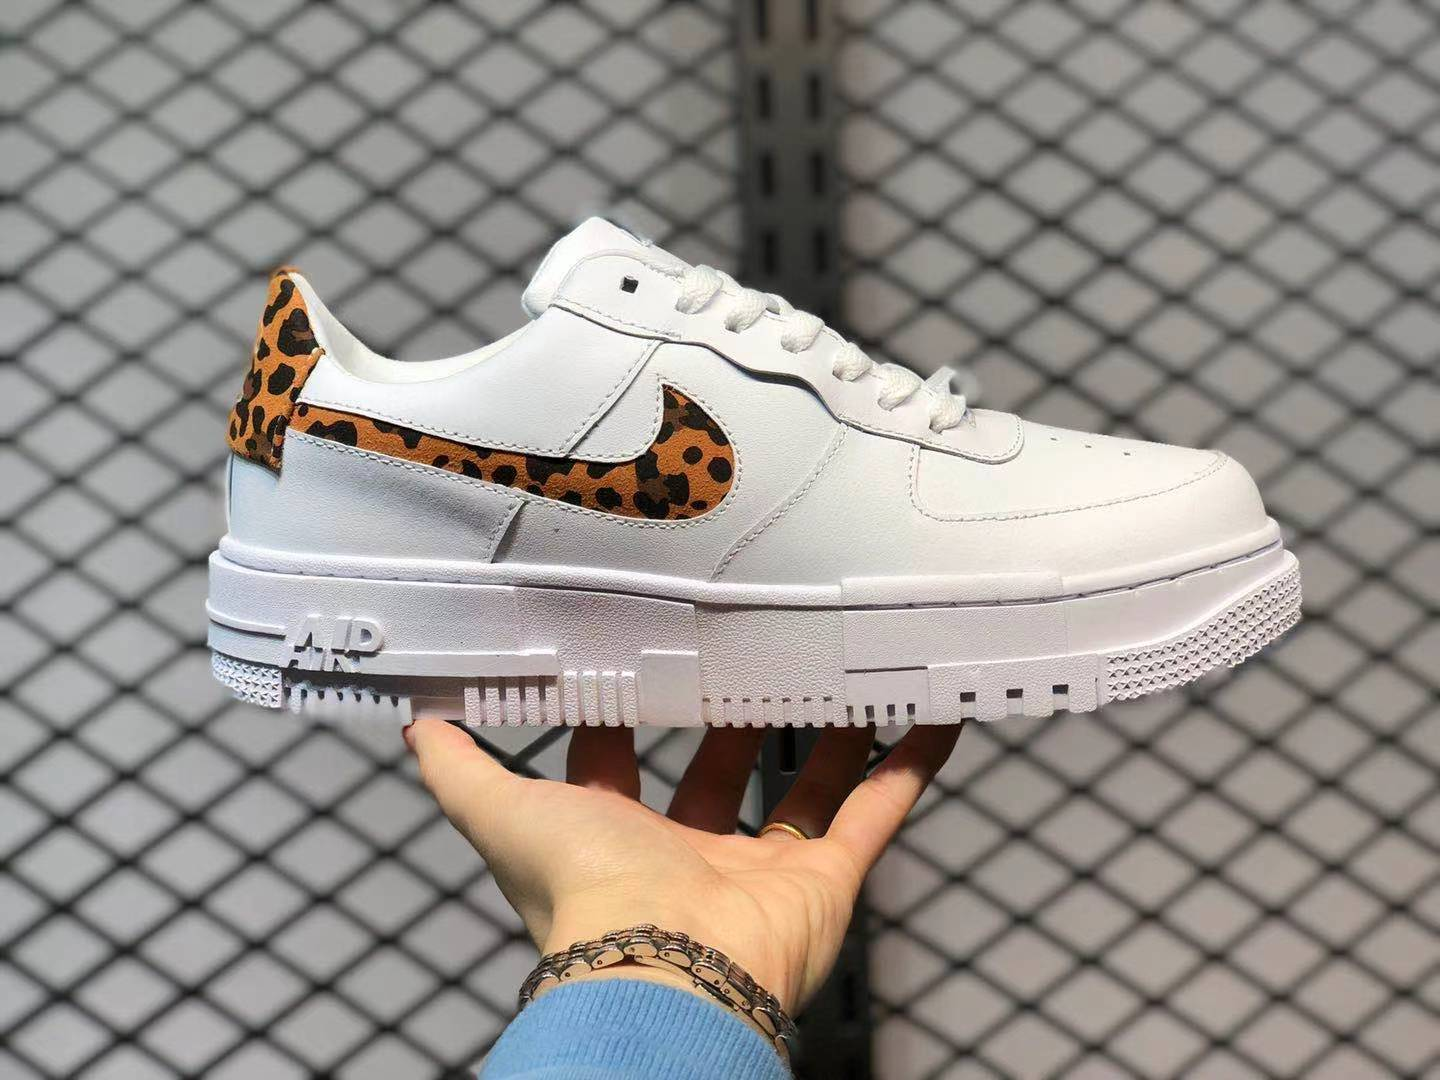 Nike Air Force 1 Pixel Leopard White CV8481-100 To Buy